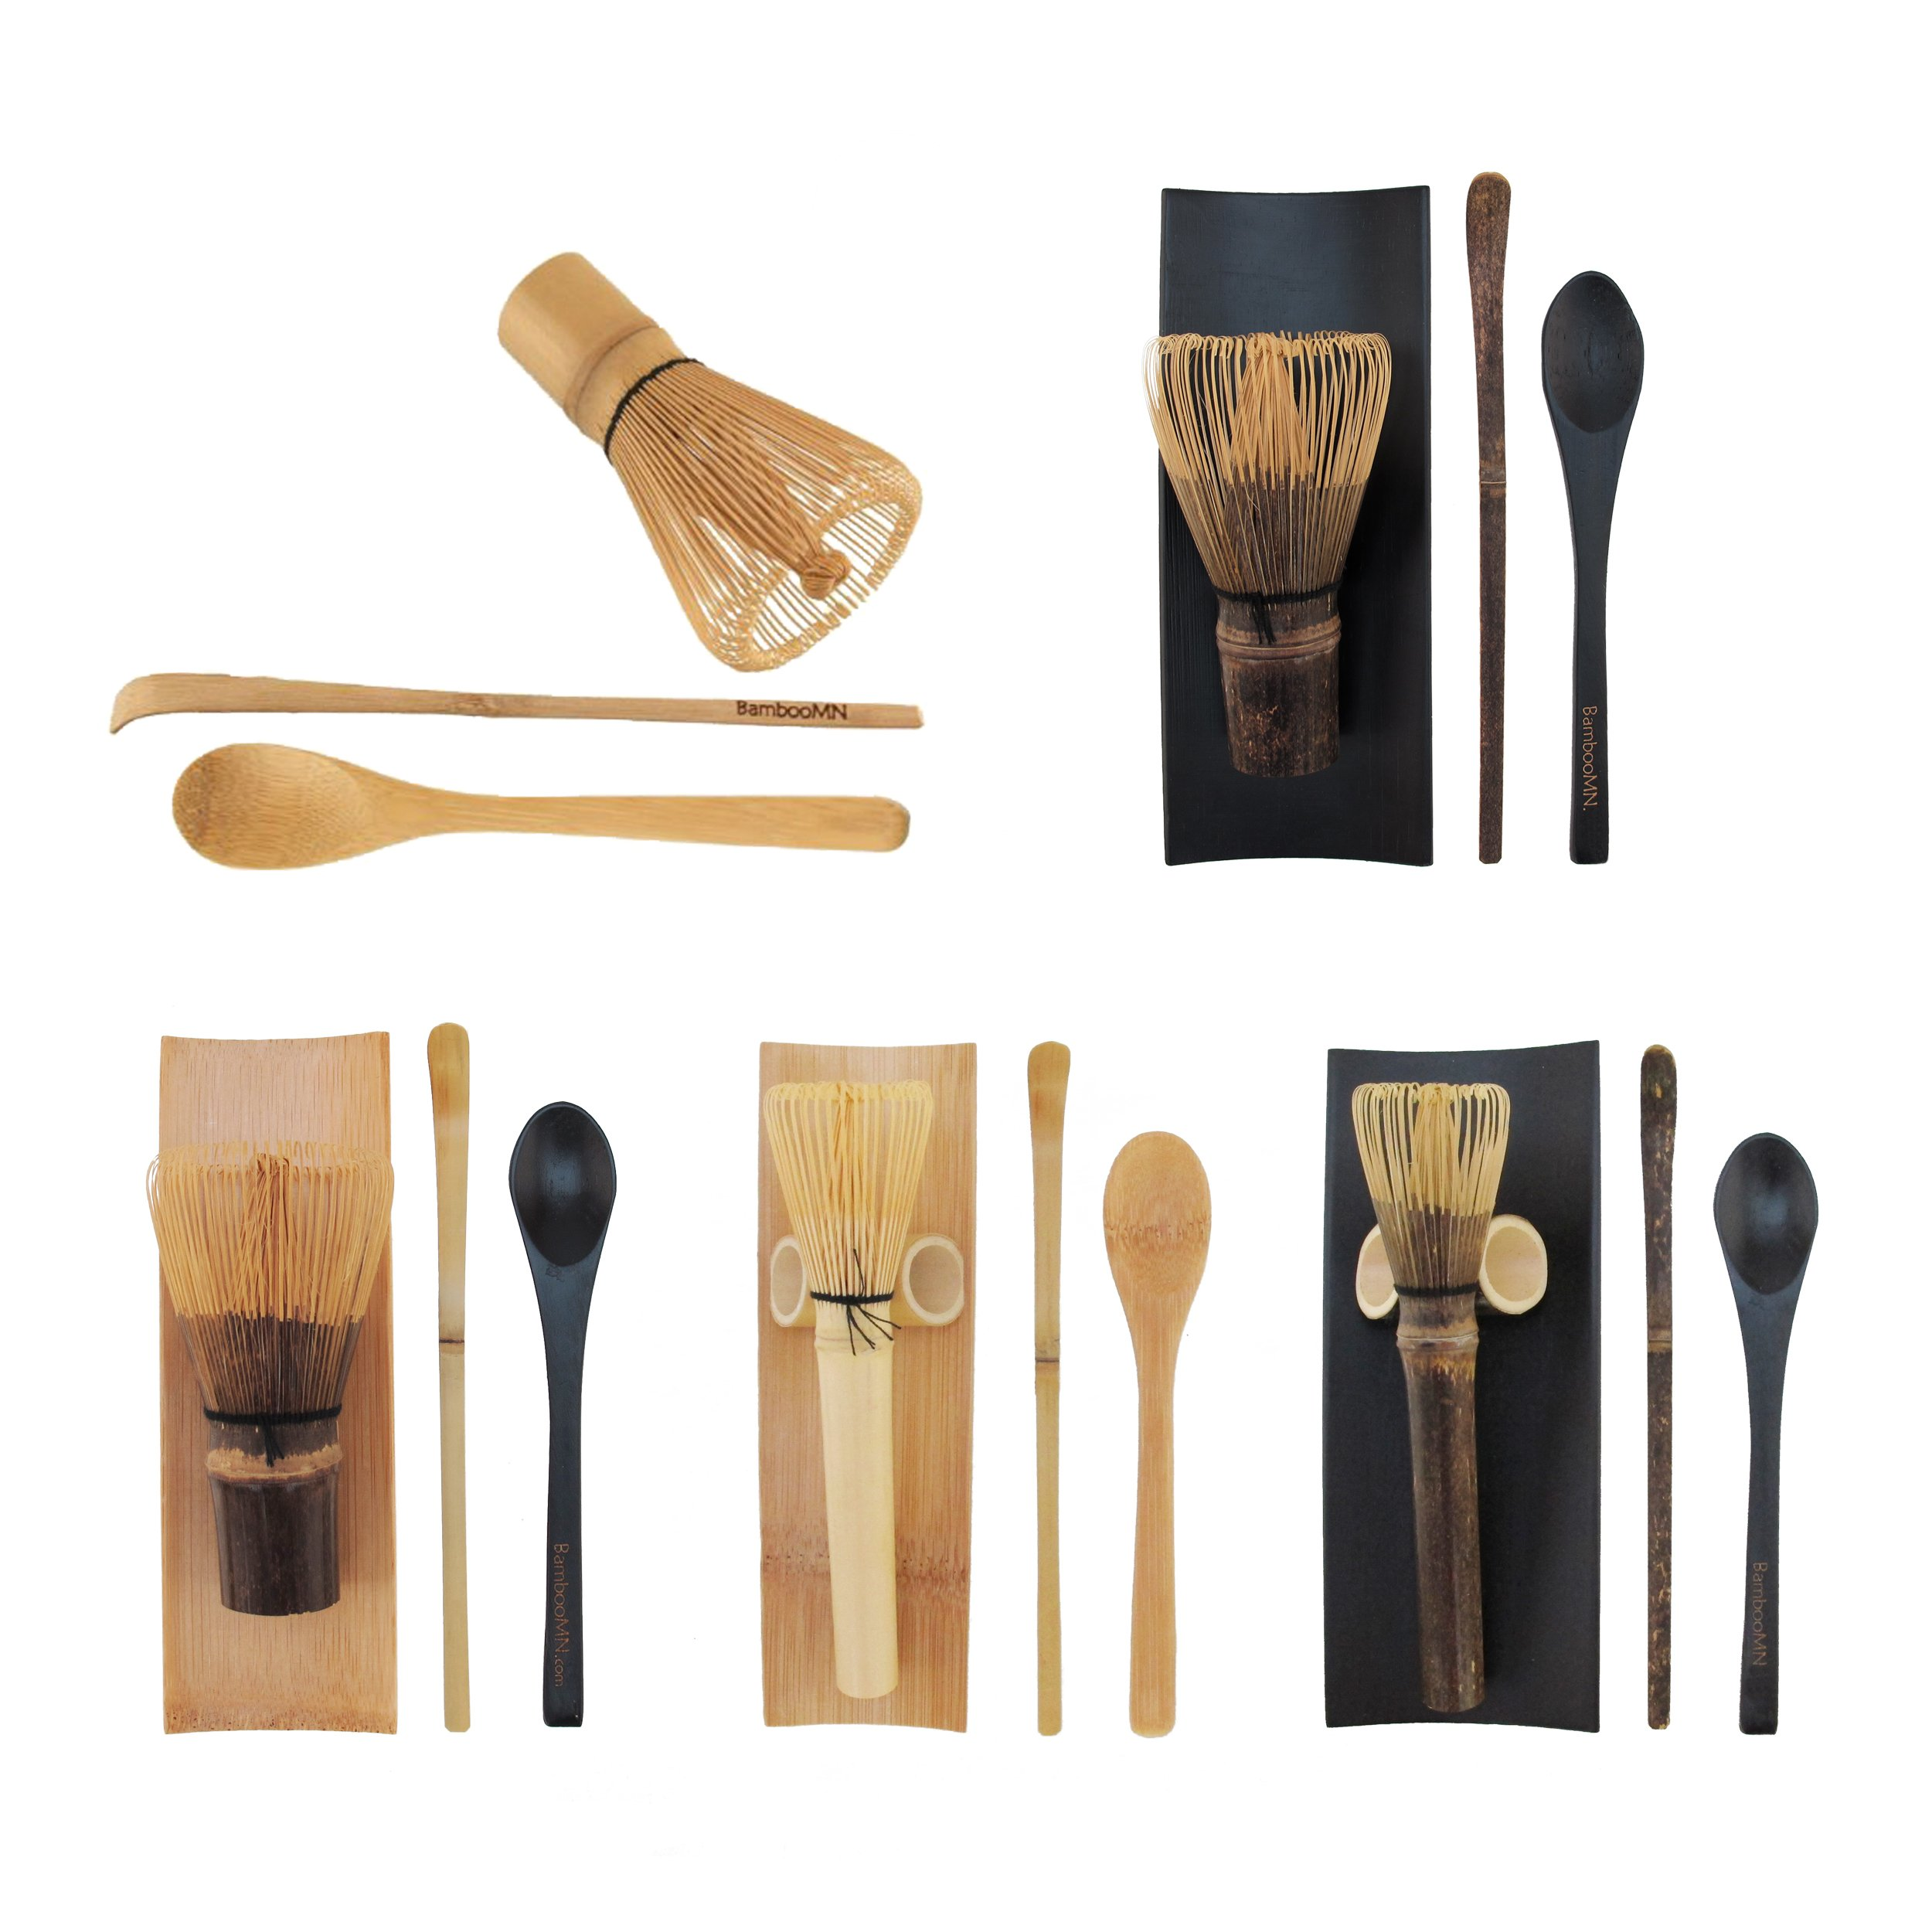 BambooMN Matcha Whisk Set - Golden Chasen (Tea Whisk), Chashaku (Hooked Bamboo Scoop), Tea Spoon - 10 Sets by BambooMN (Image #2)